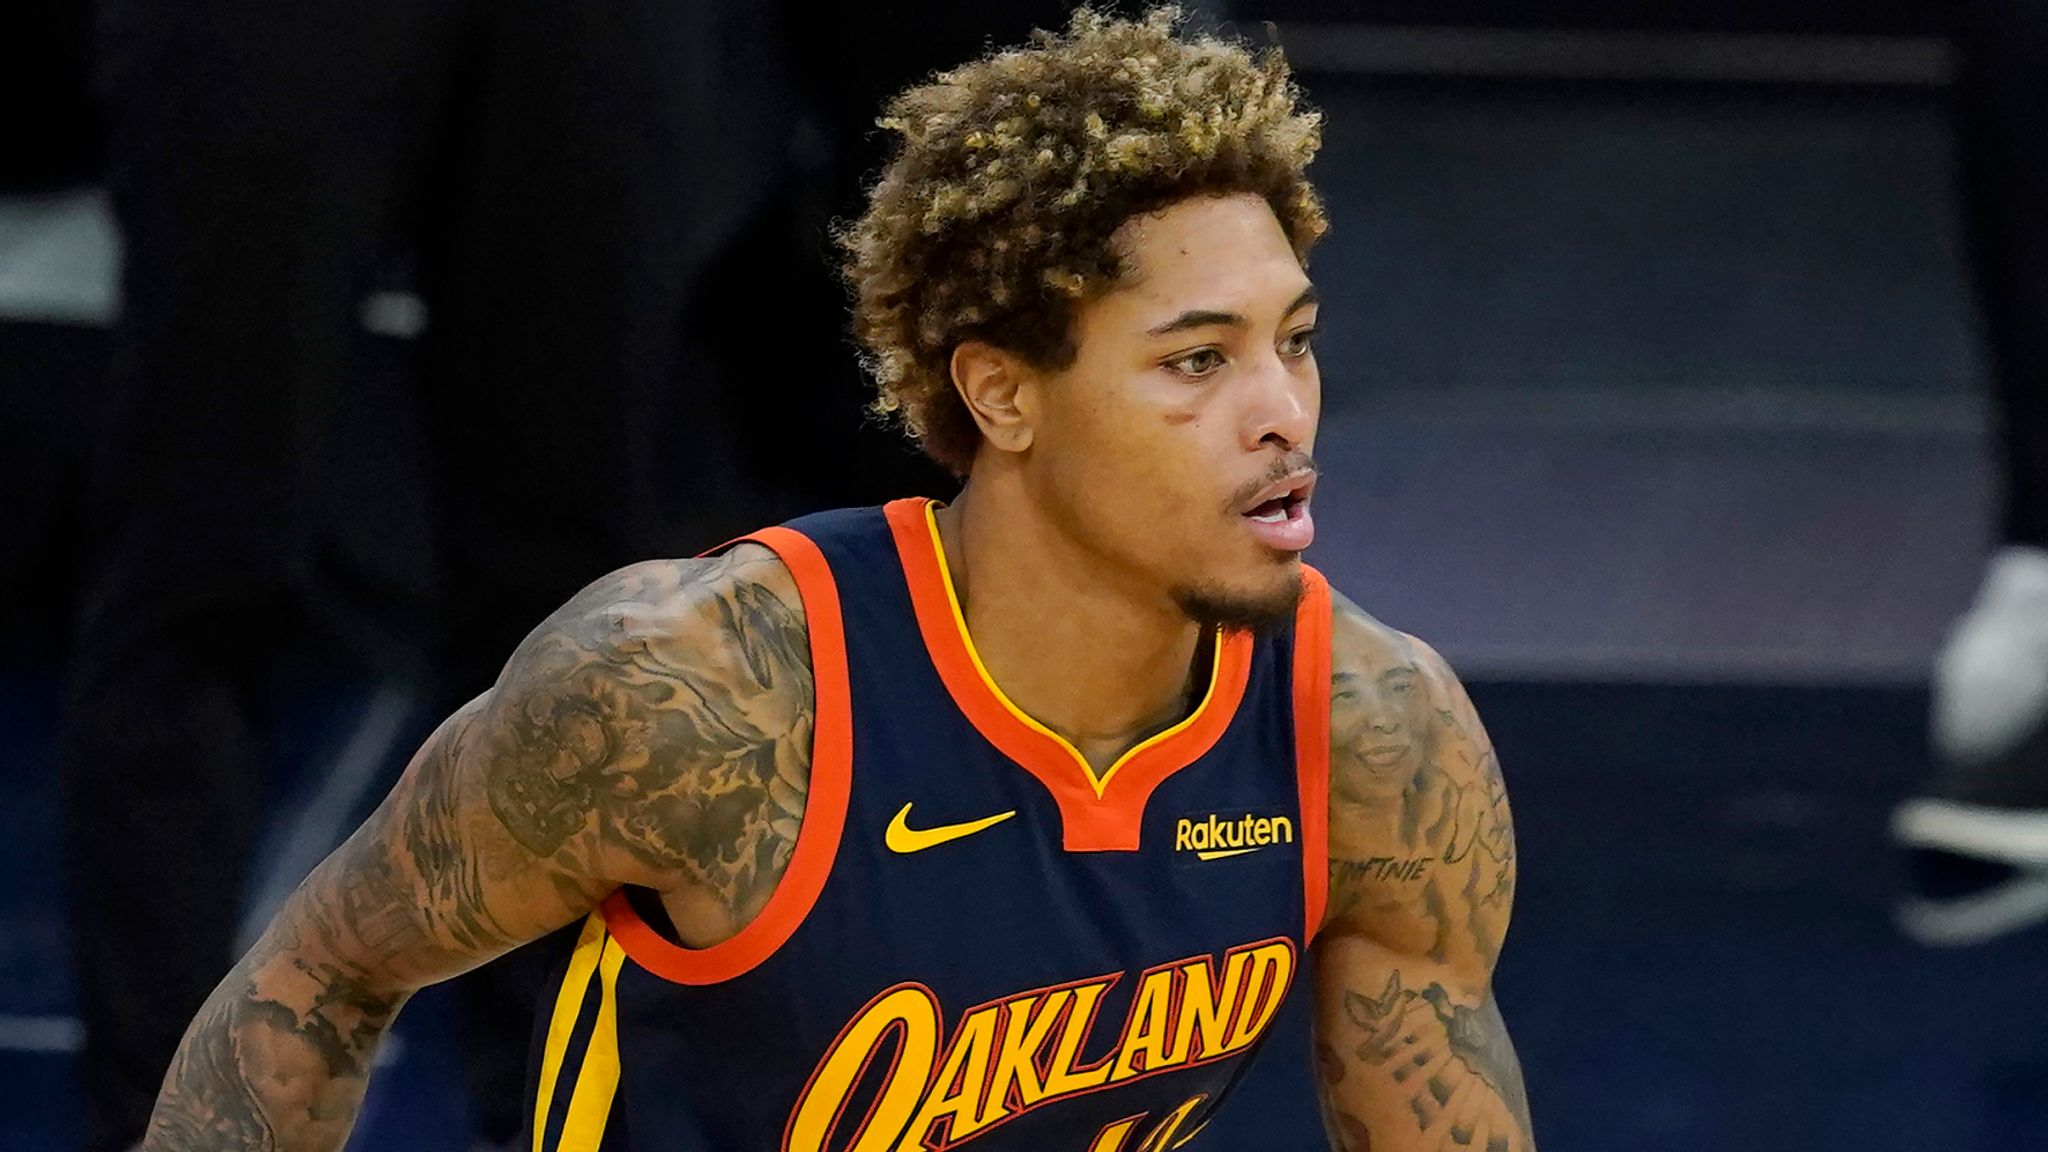 Kelly Oubre Jr. and Golden State Warriors - Perfect Sign Deal